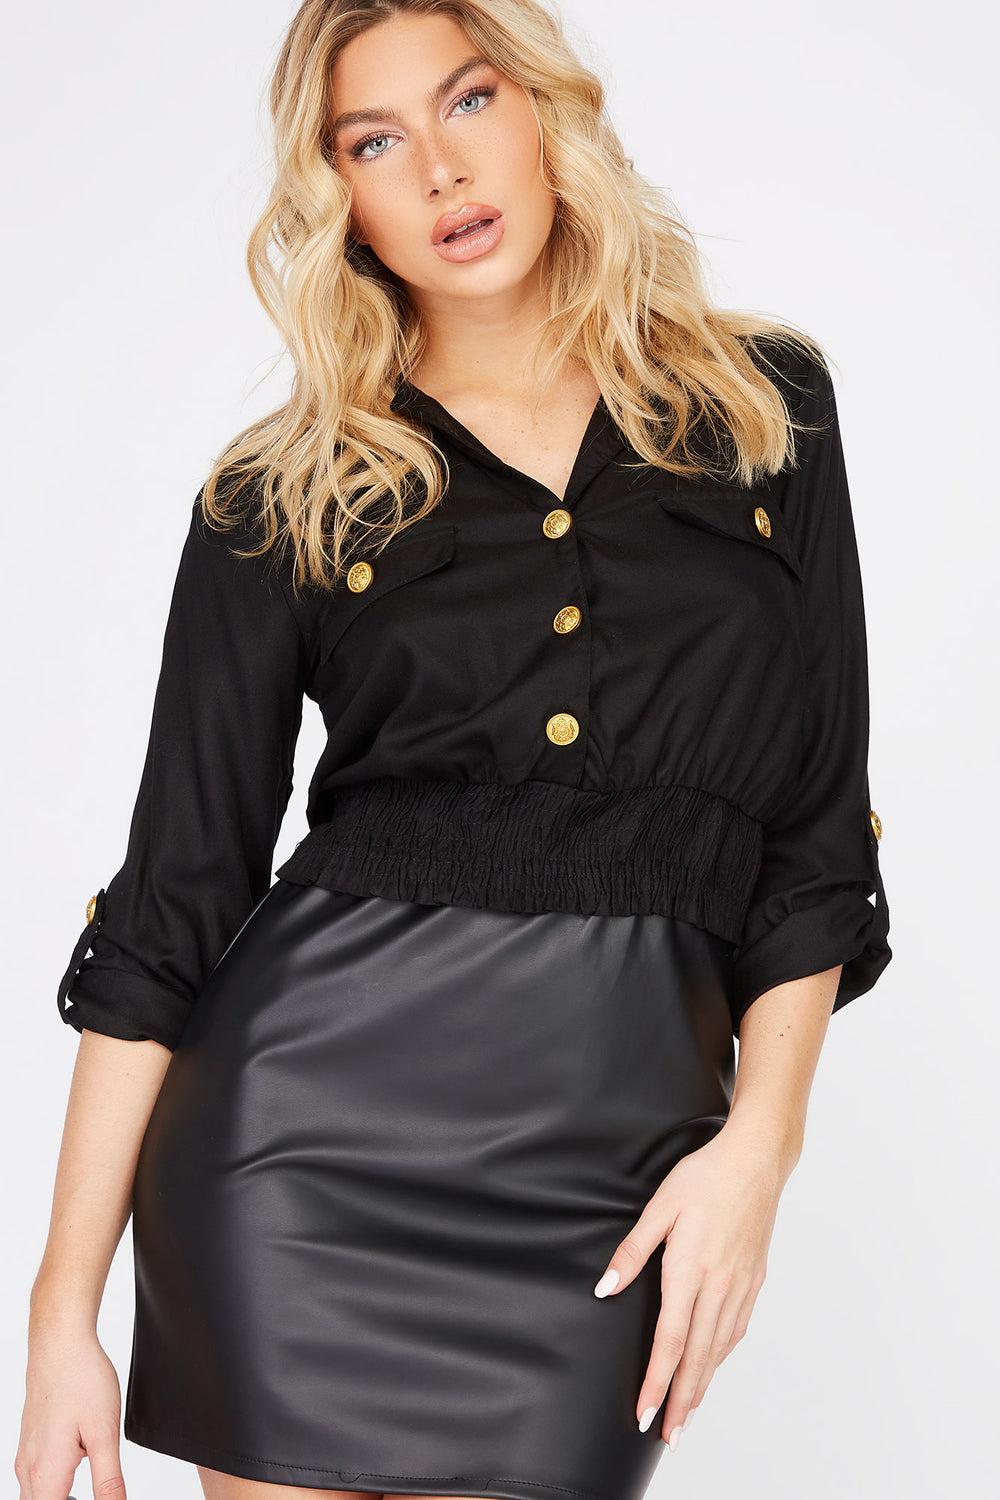 Military Button-Up Cropped Shirt Black